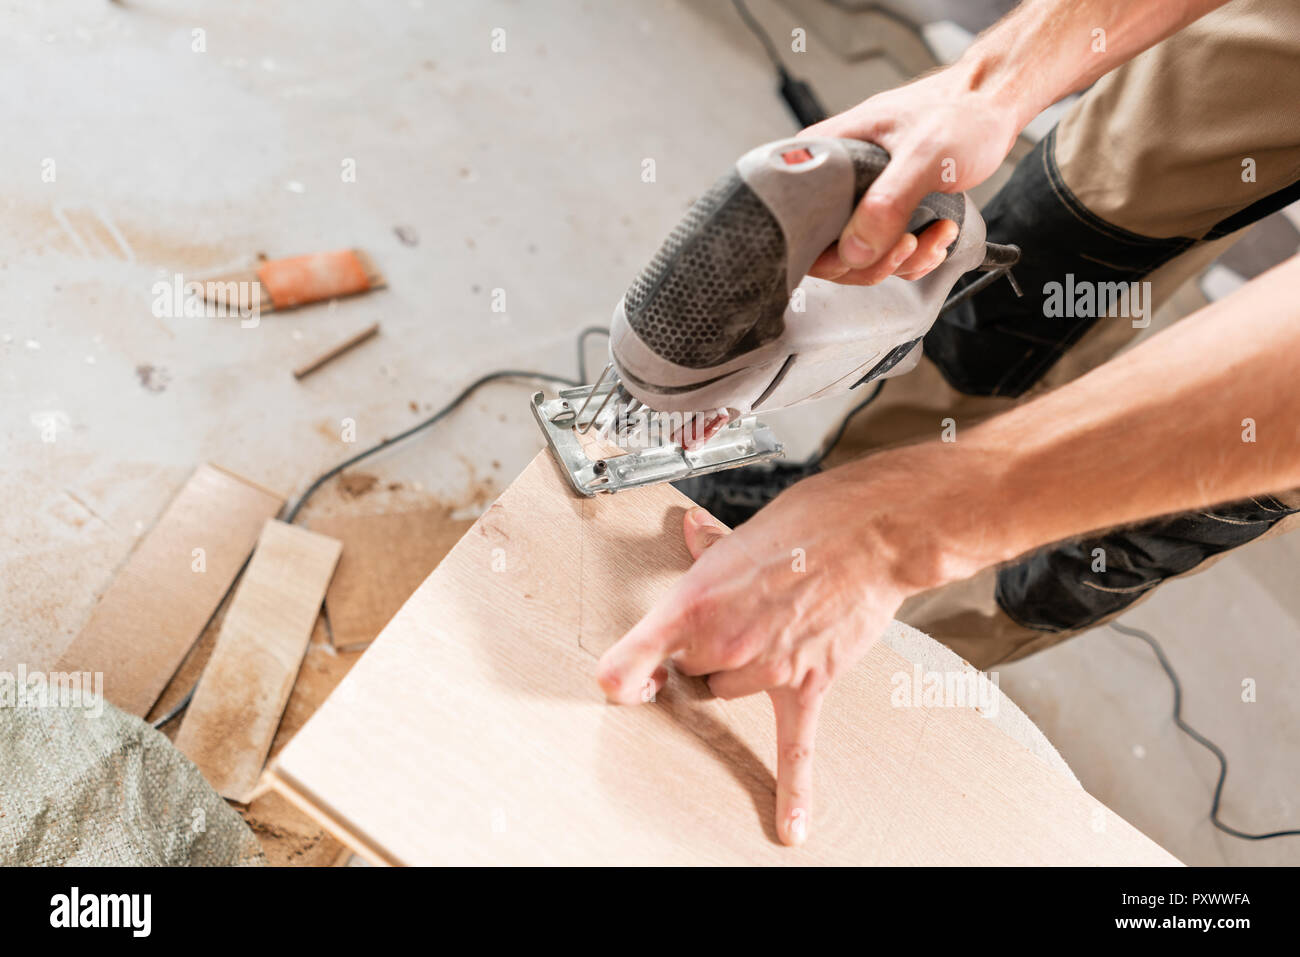 Male worker cuts the laminate Board with an electrofret saw. installing new wooden laminate flooring. concept of repair in house. - Stock Image